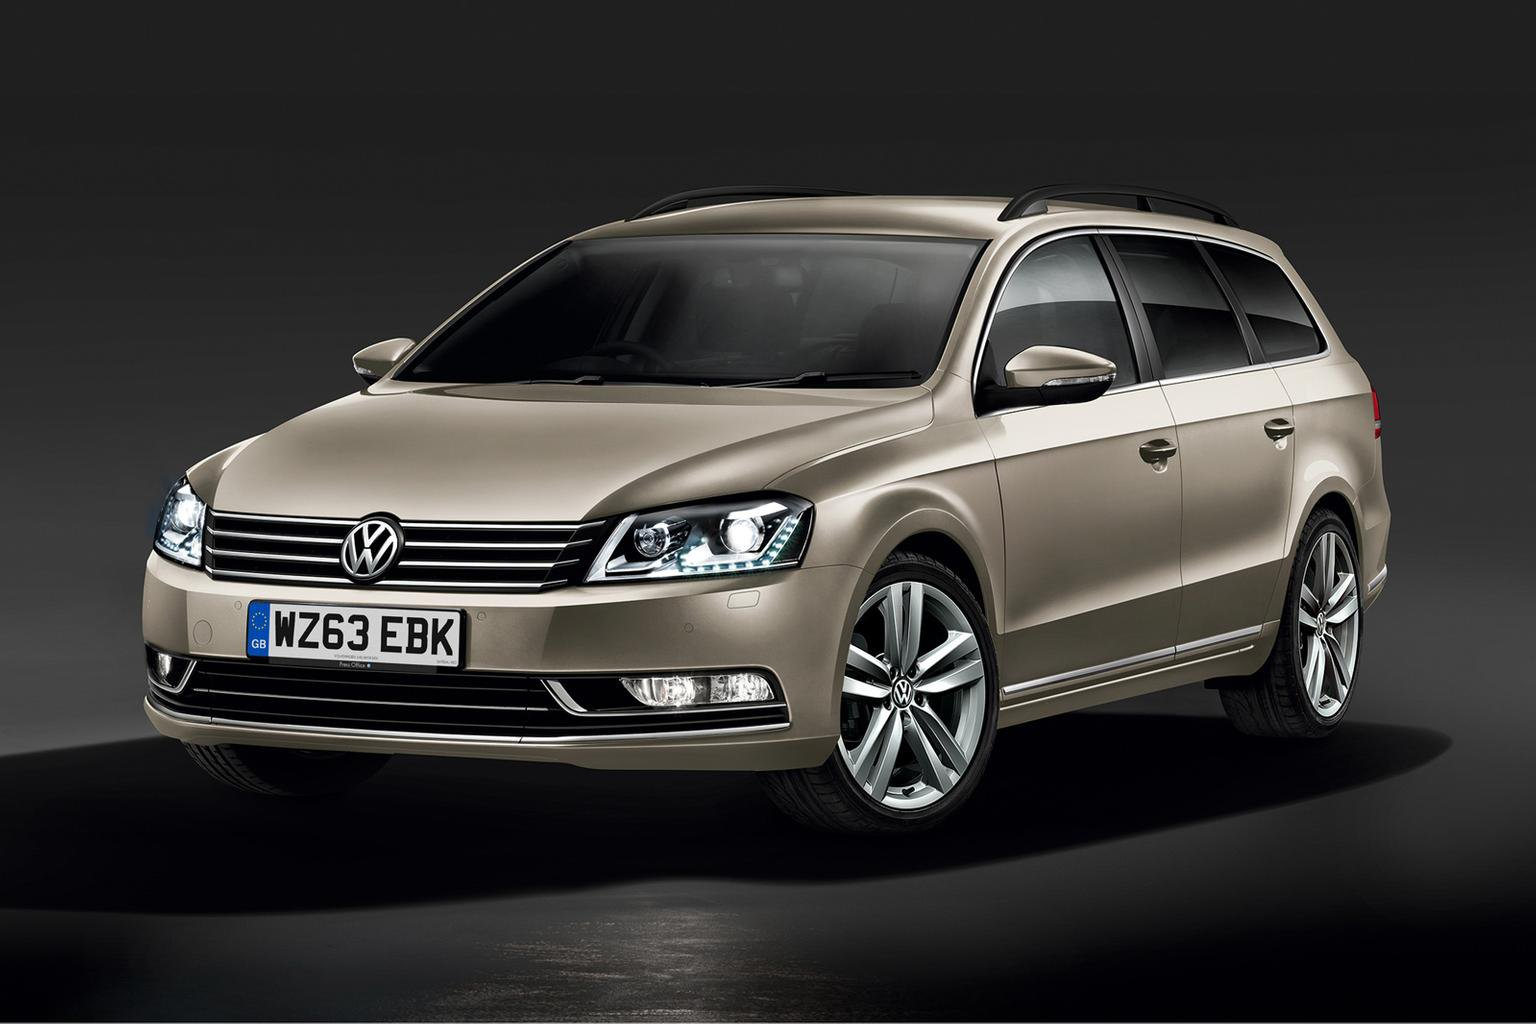 Volkswagen Passat Executive models announced